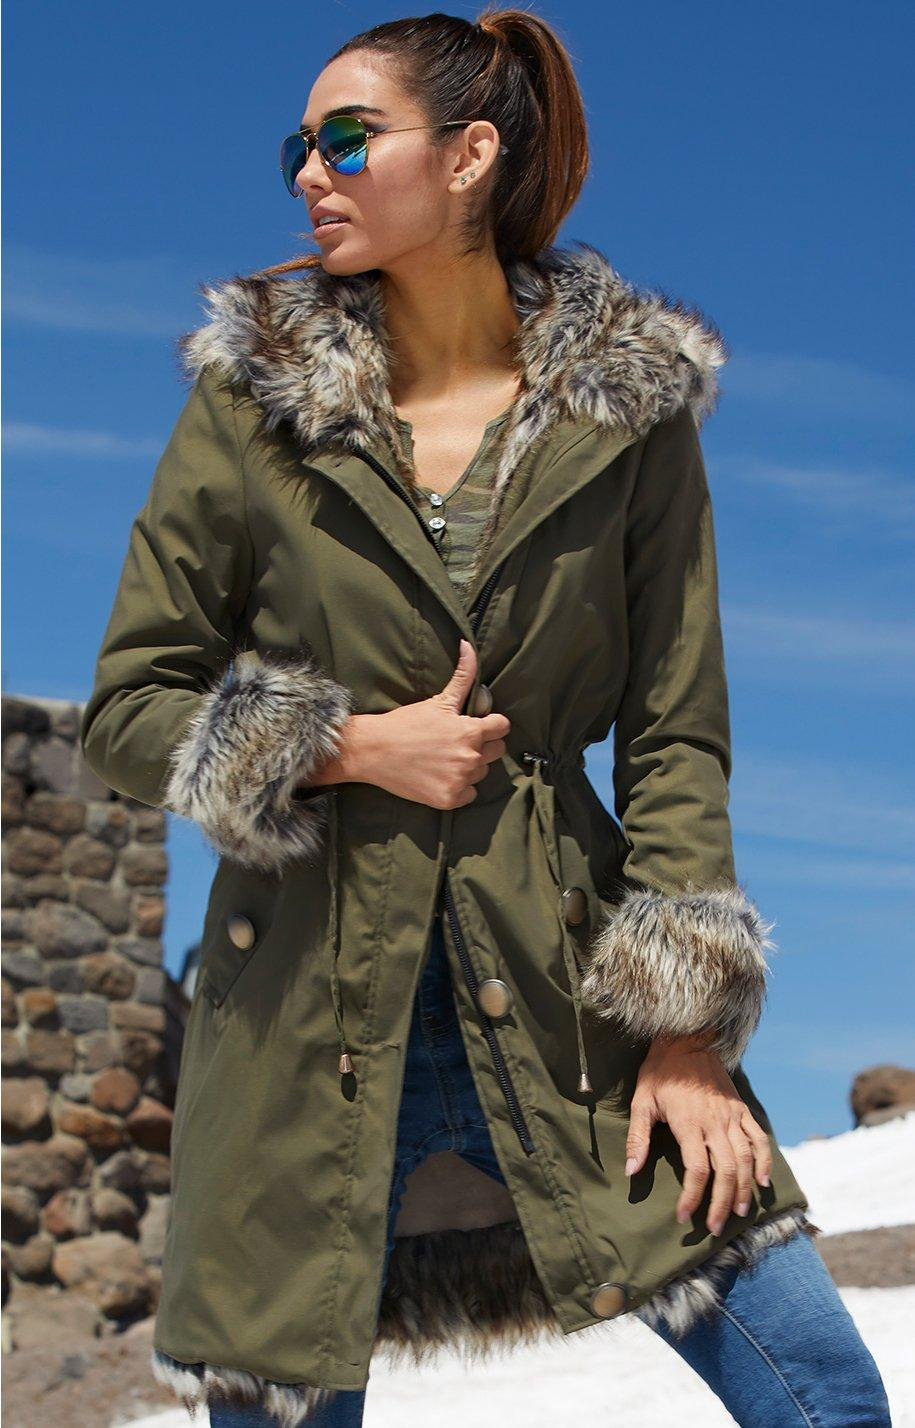 model wearing olive coat with faux fur lining over jeans